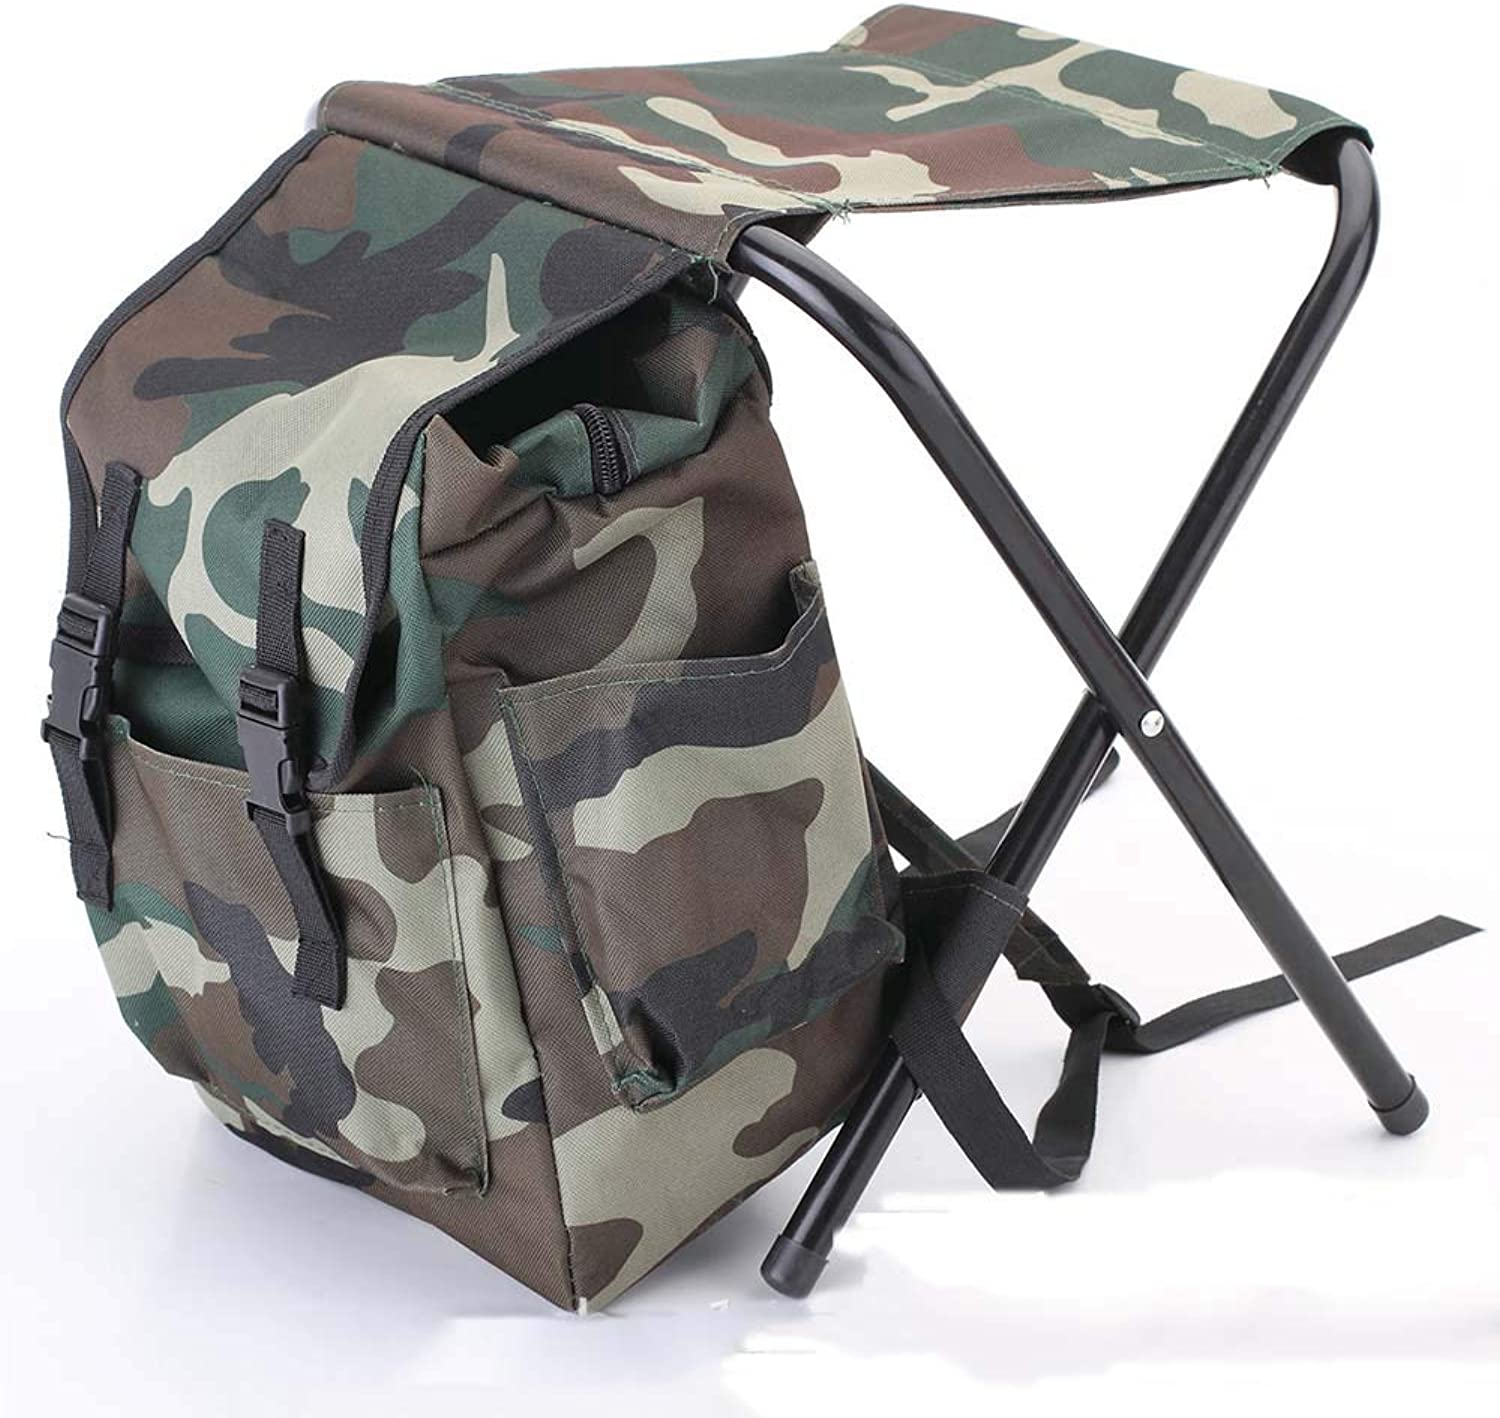 ZJING Outdoor Leisure Mountaineering Portable Backpack Stool Backpack Seat Integrated Chair